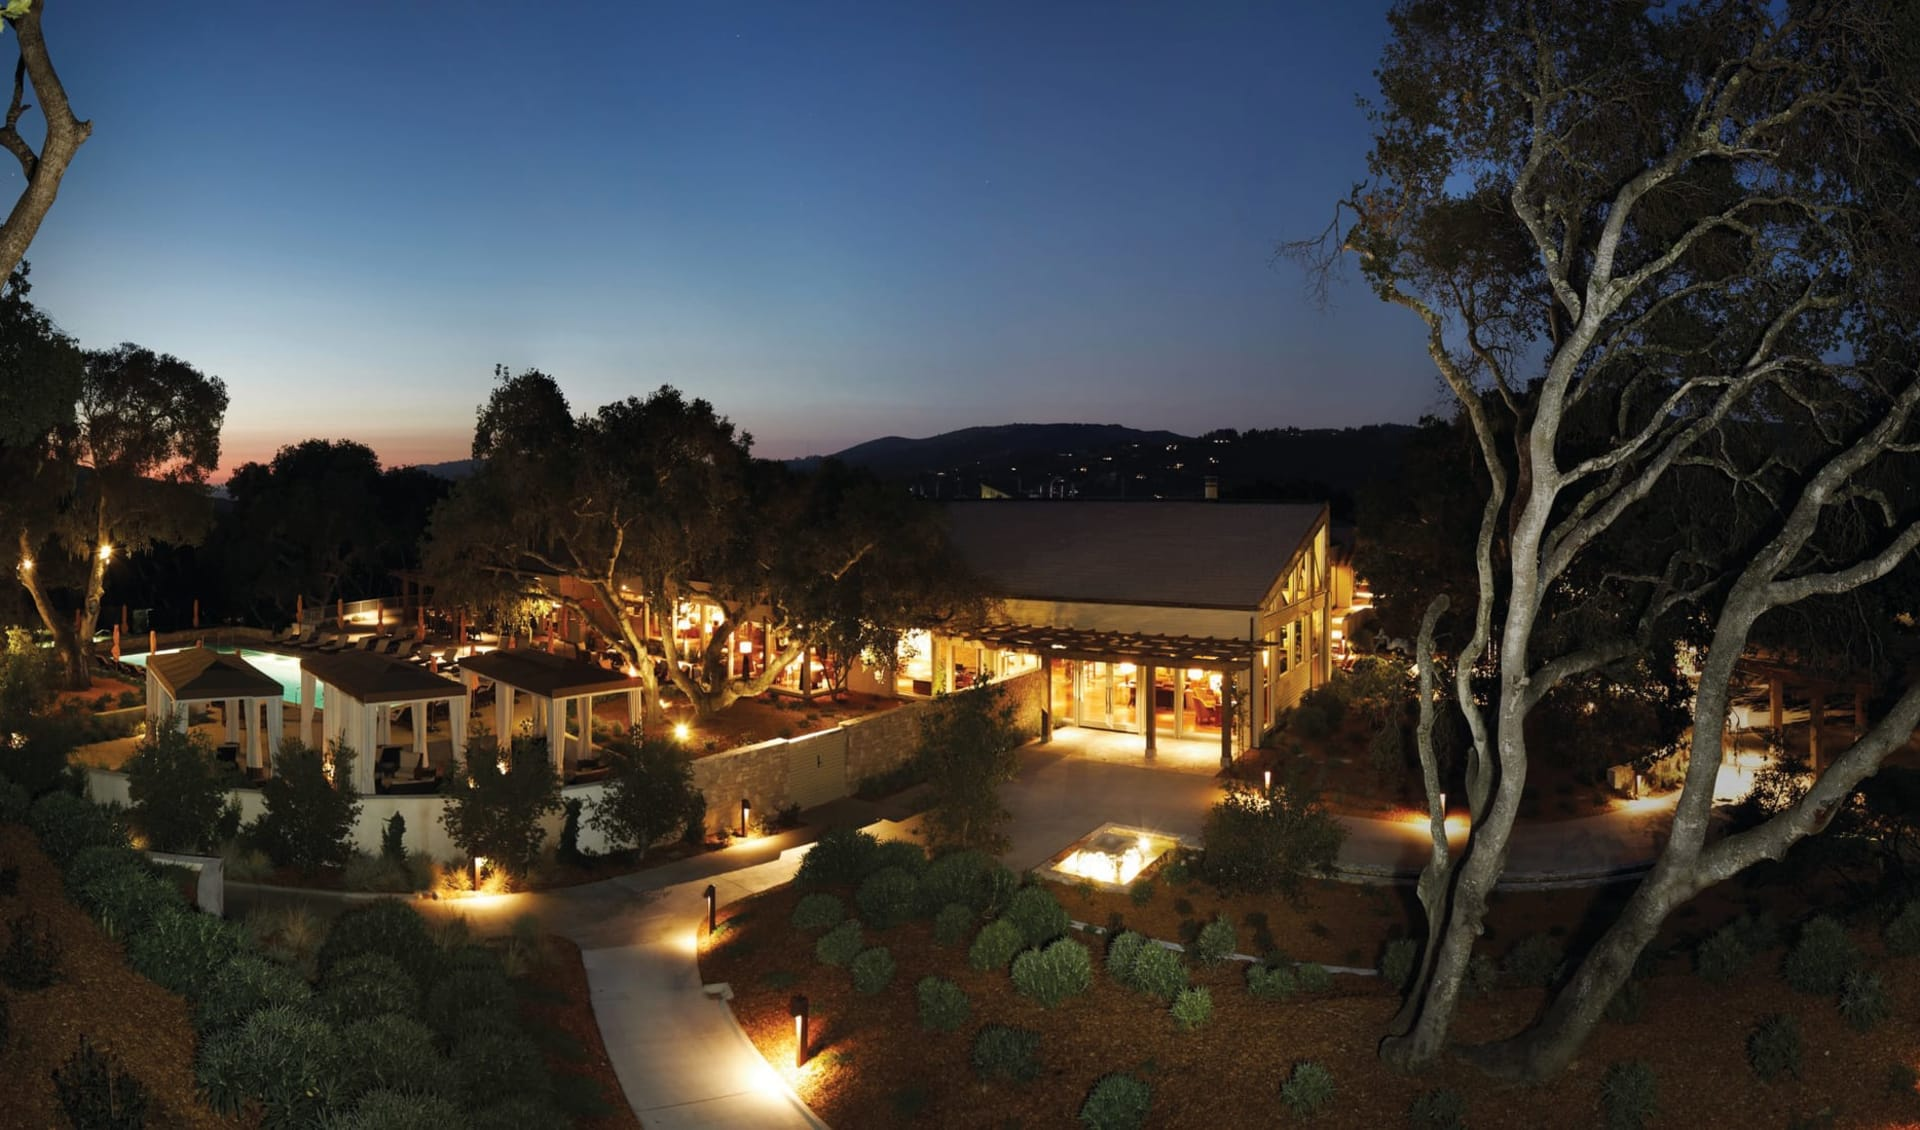 Carmel Valley Ranch: Exterior_Carmel Valley Ranch_Aussenansicht bei Nacht_Bonotel